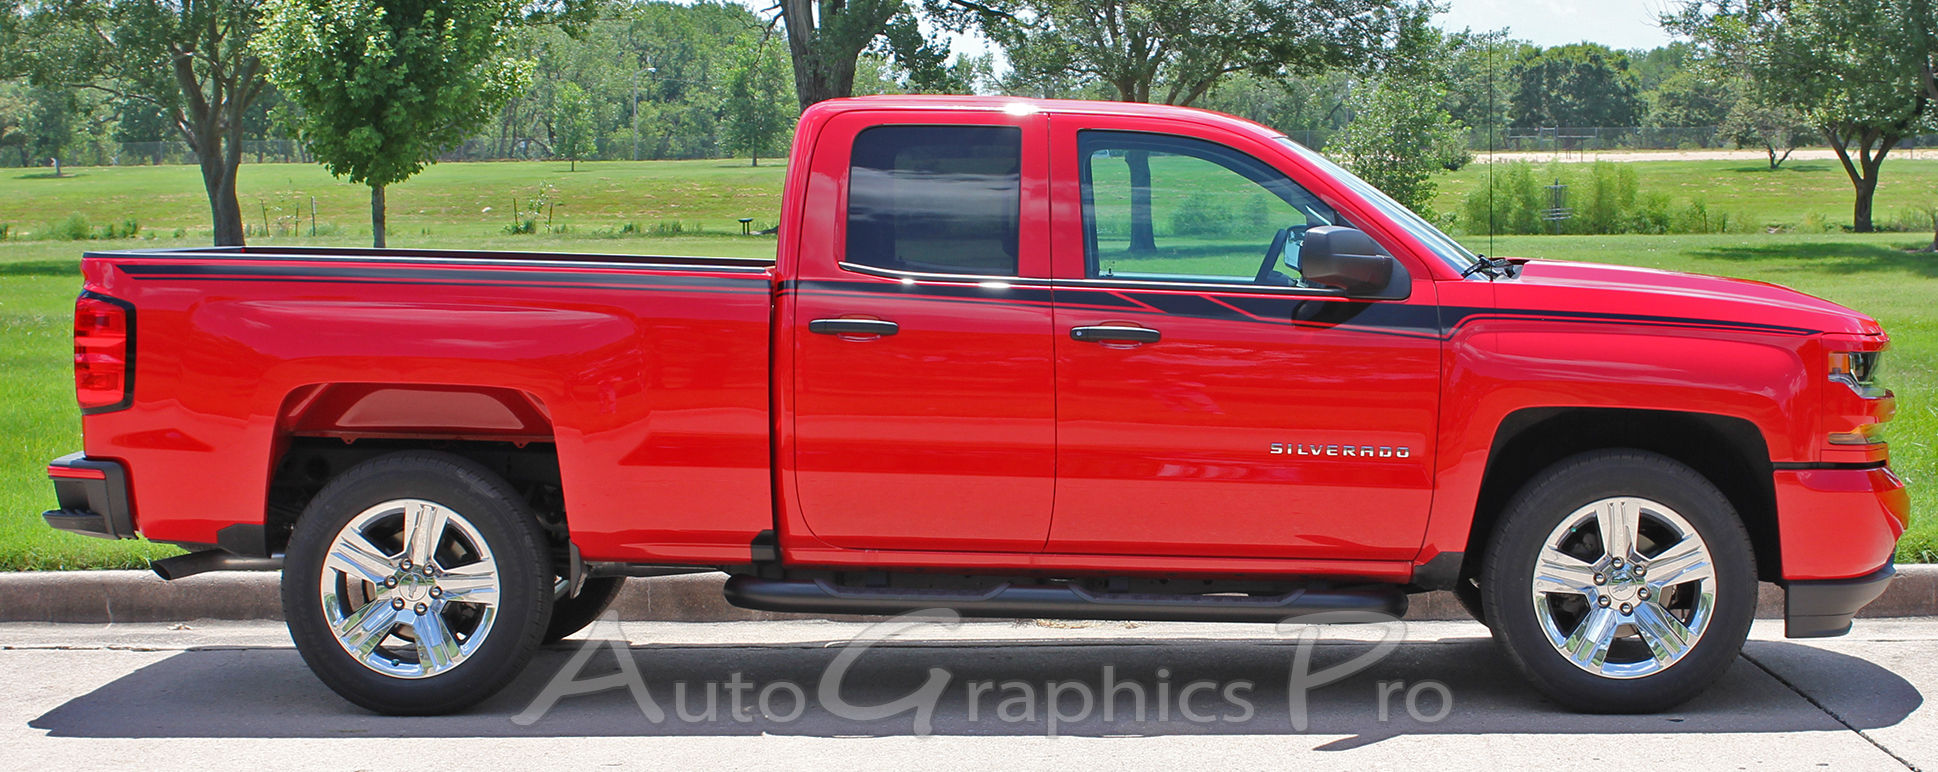 2014 2017 2018 Chevy Silverado Stripes Accelerator Decals Truck Vinyl Graphic Upper Body Accent Side Door Special Edition Rally Kit